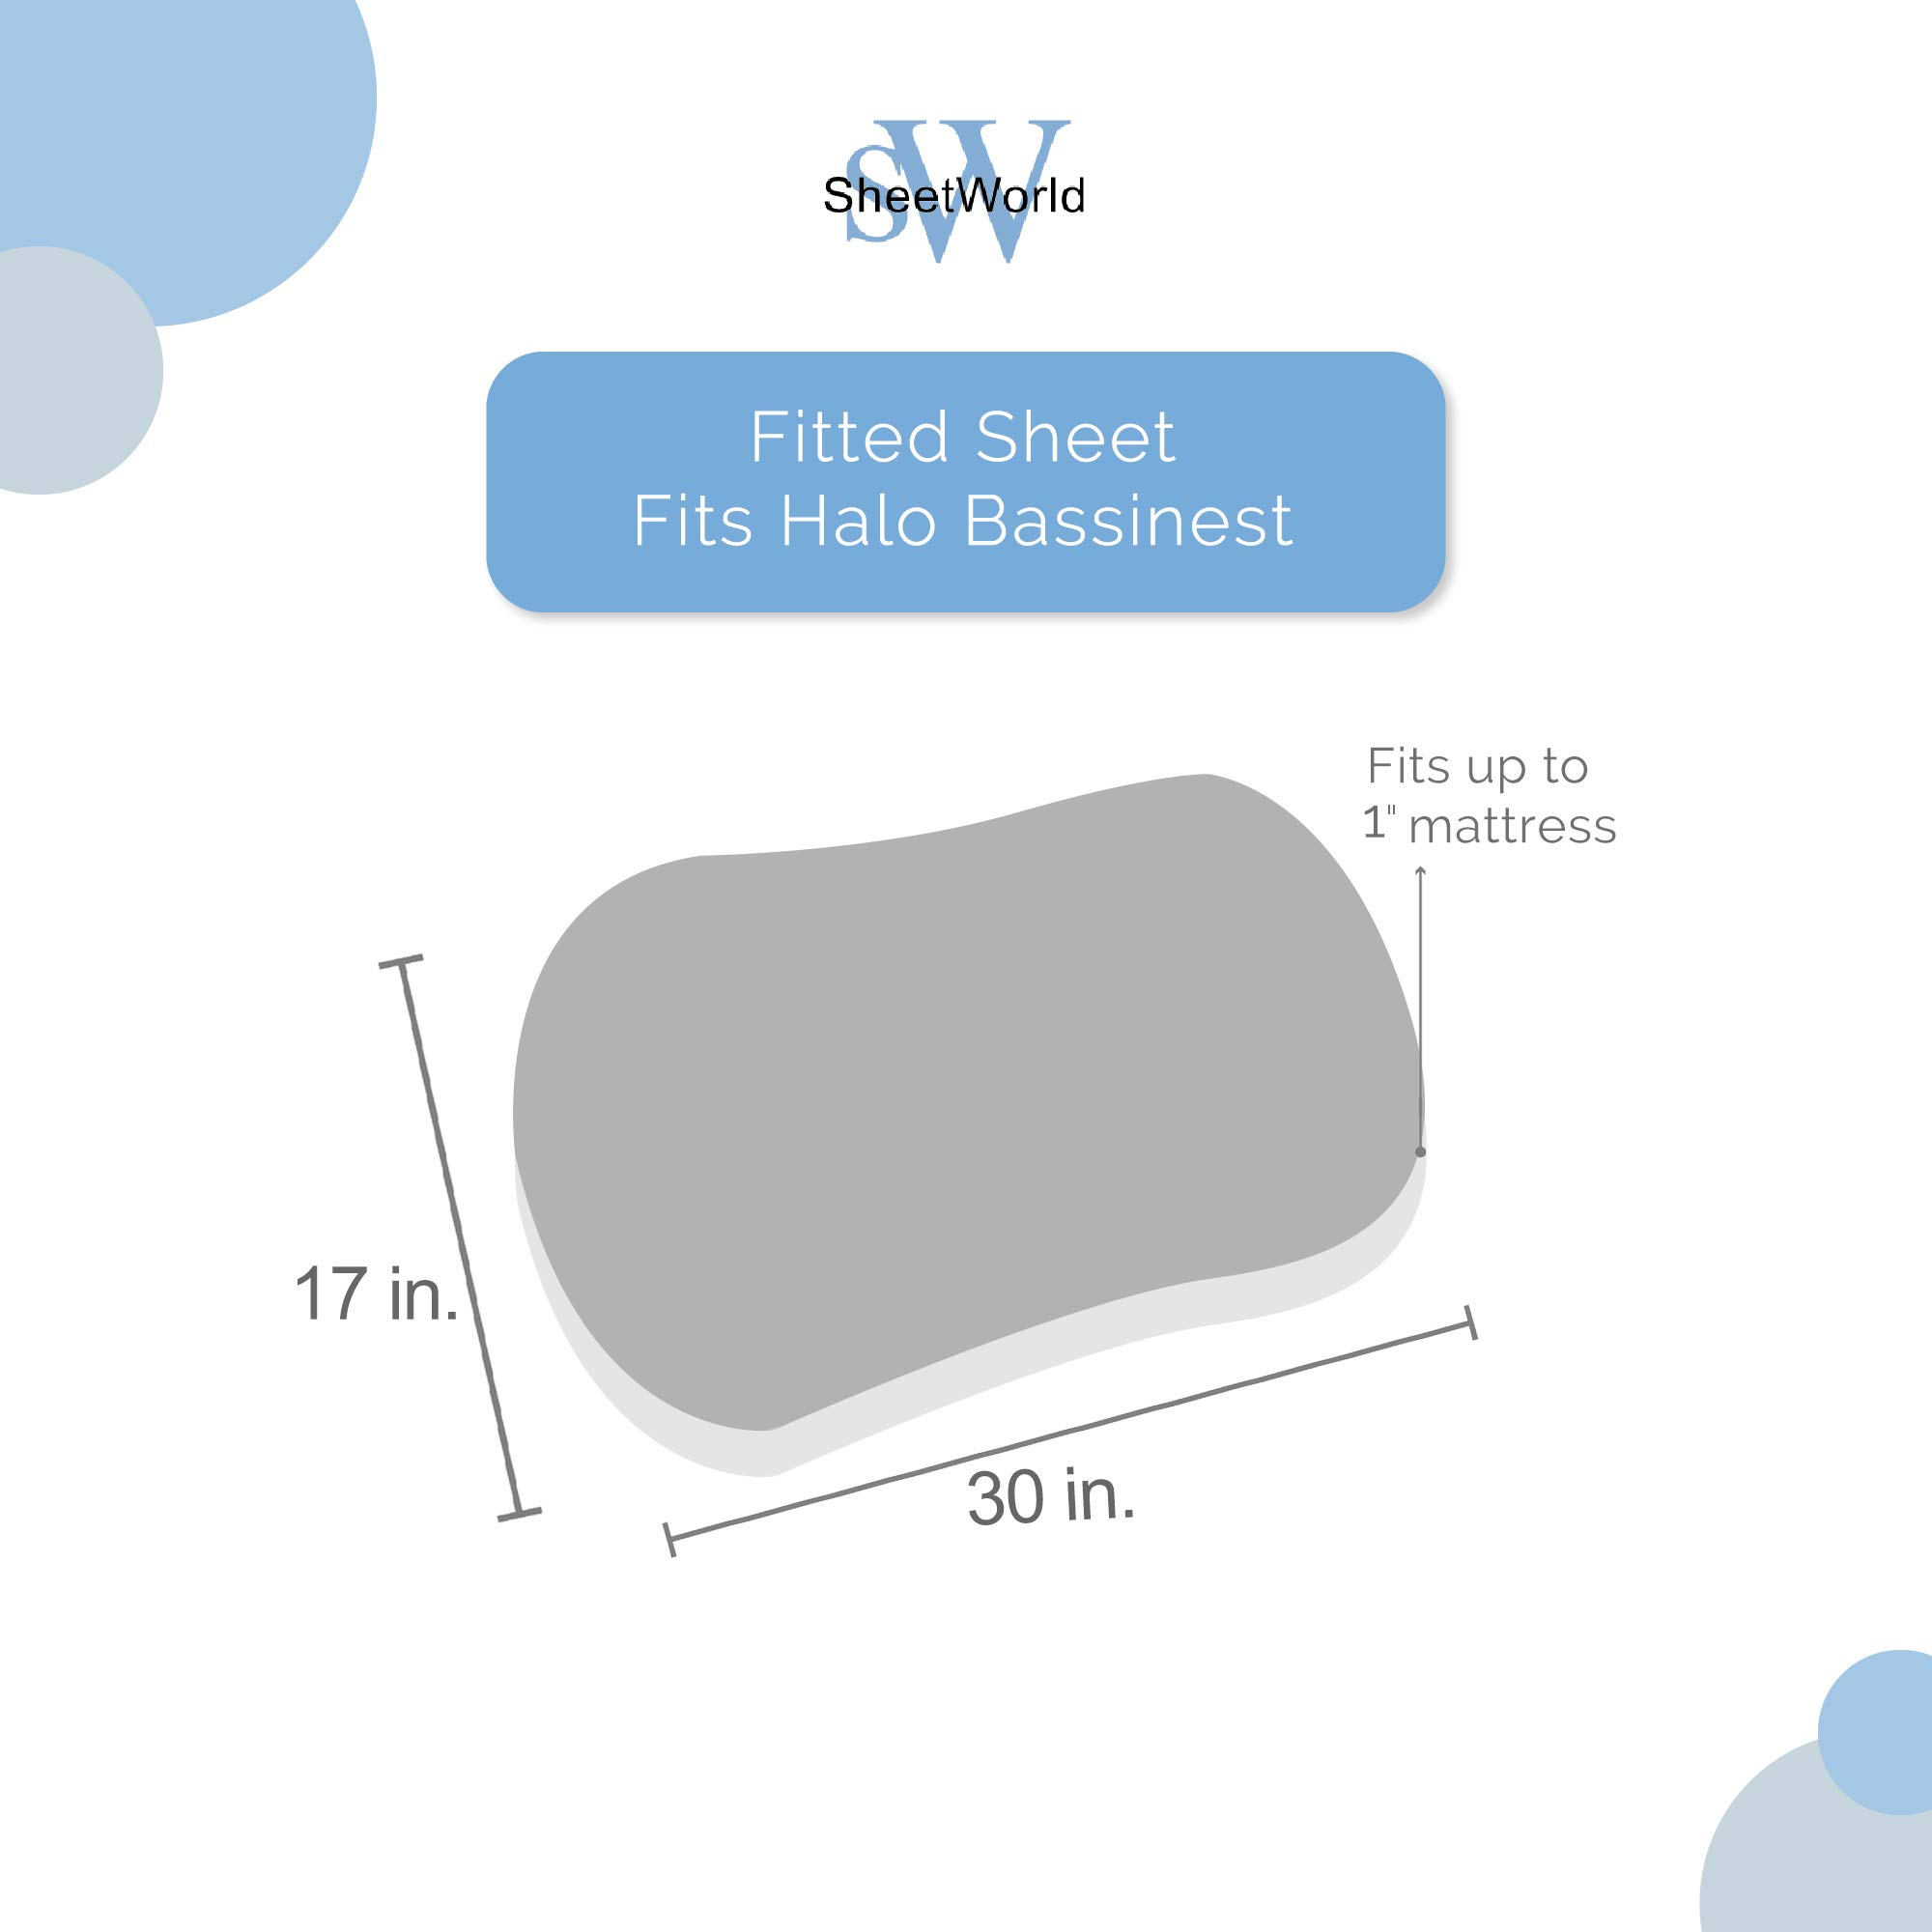 SheetWorld Fitted 100% Cotton Jersey Bassinet Sheet Fits Halo Bassinet Swivel Sleeper 17 x 30, Minnie Mouse Bows, Made in USA by SHEETWORLD.COM